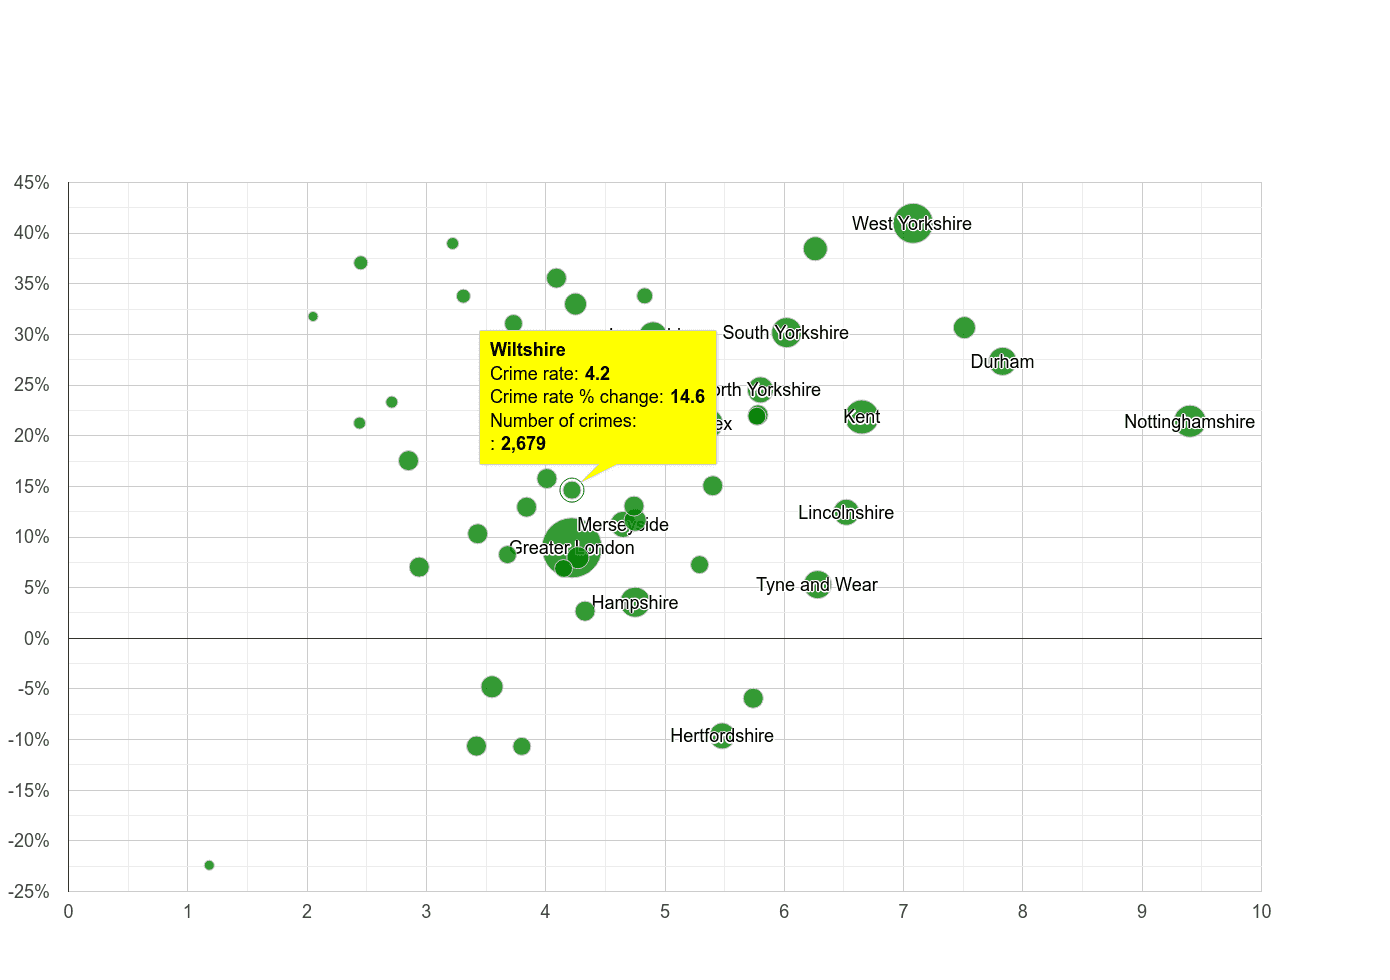 Wiltshire shoplifting crime rate compared to other counties